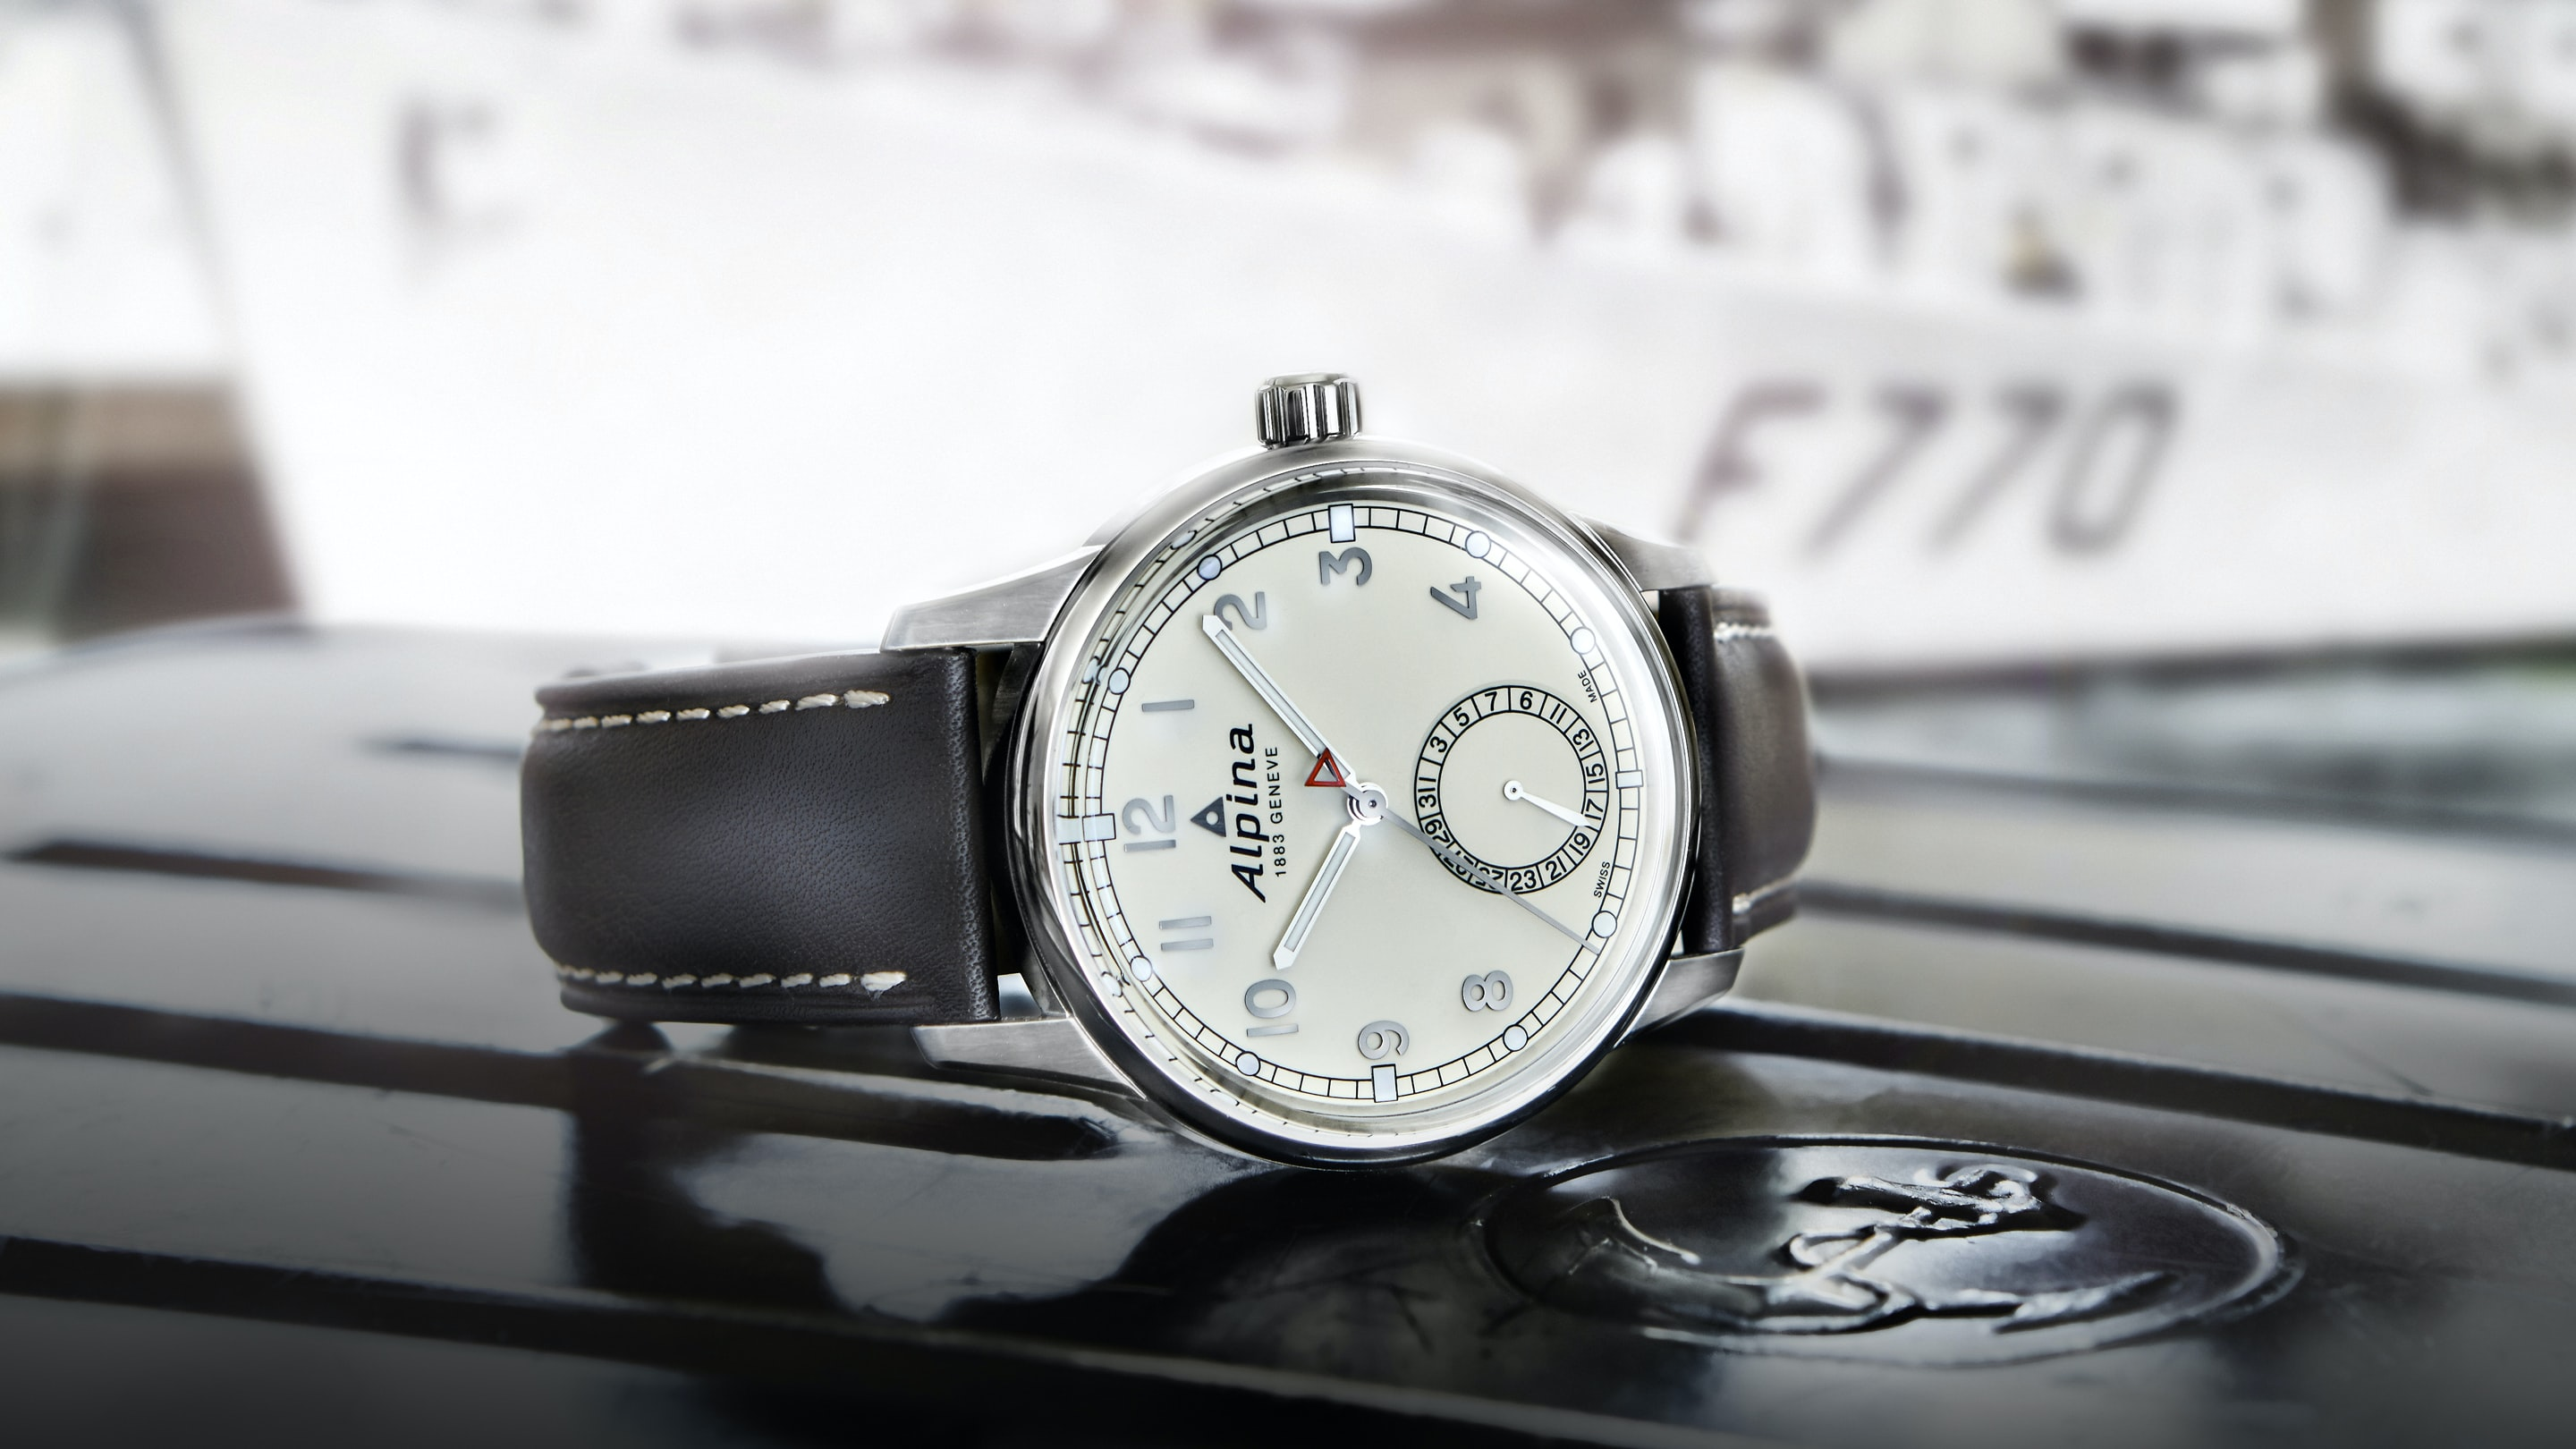 Introducing: The Alpiner Manufacture With Alpina AL-710 In-House Automatic Movement